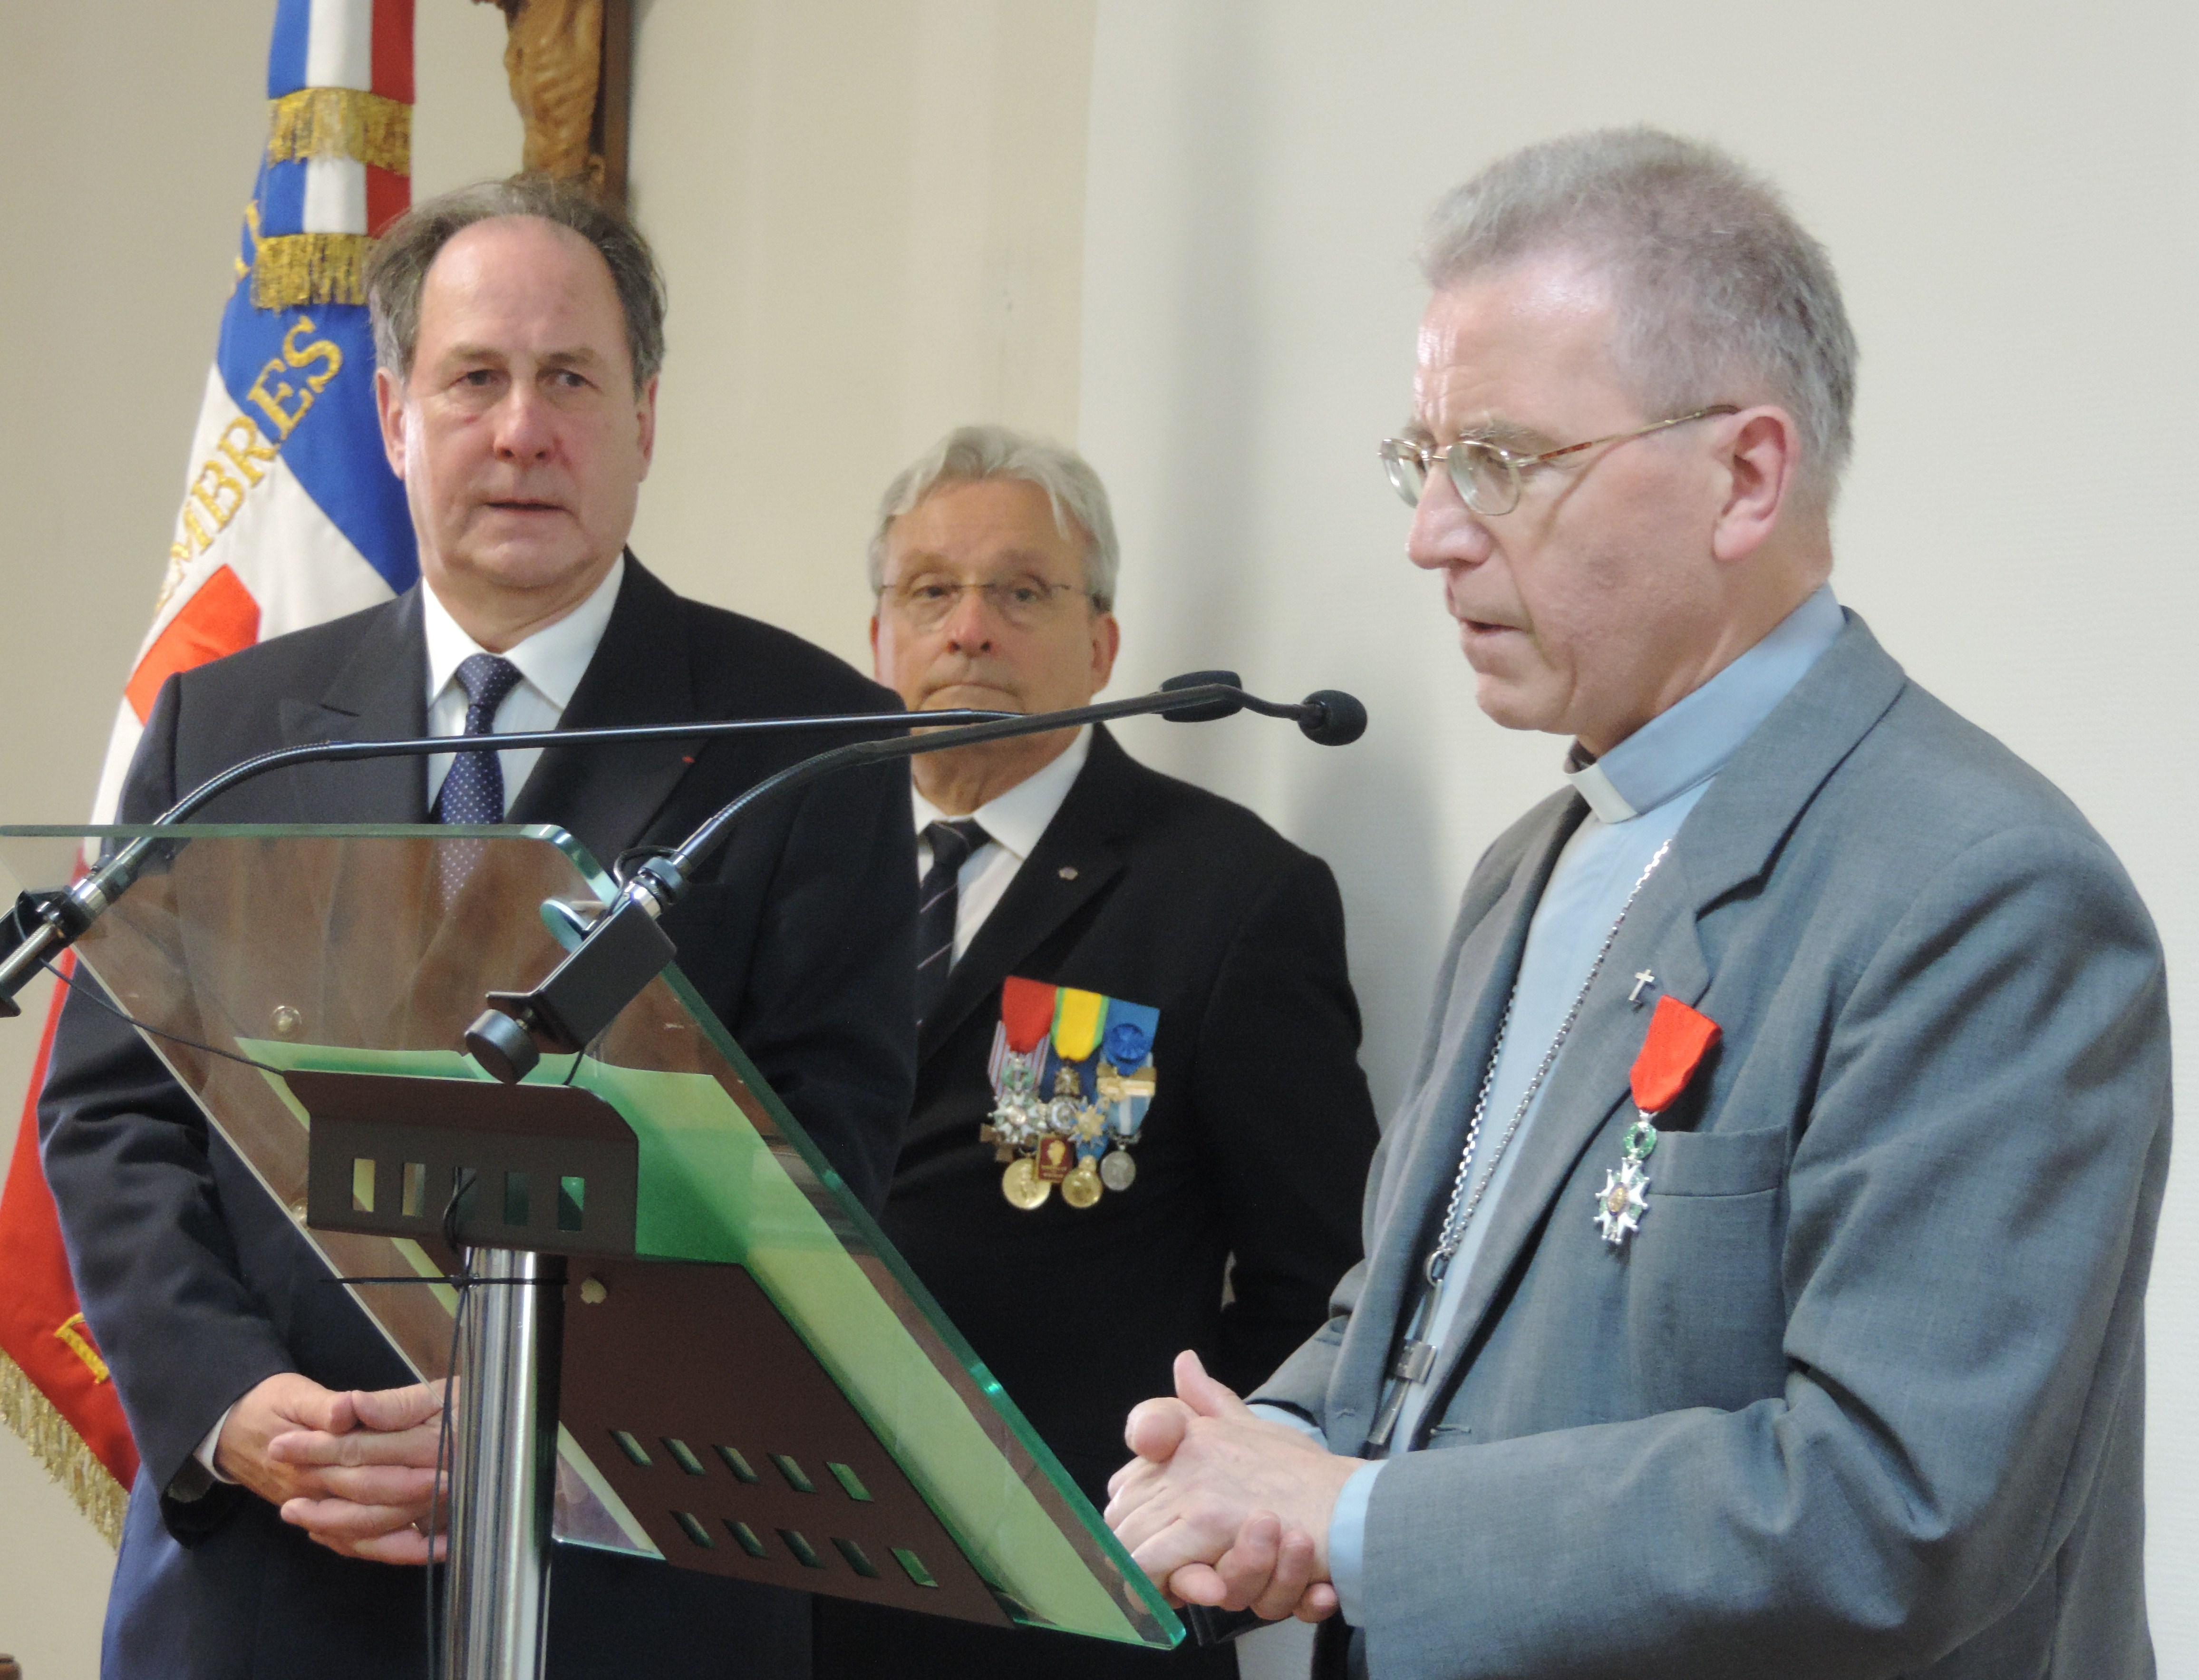 Photo of GARD Hugues Bousiges remet la légion d'honneur à Monseigneur Wattebled